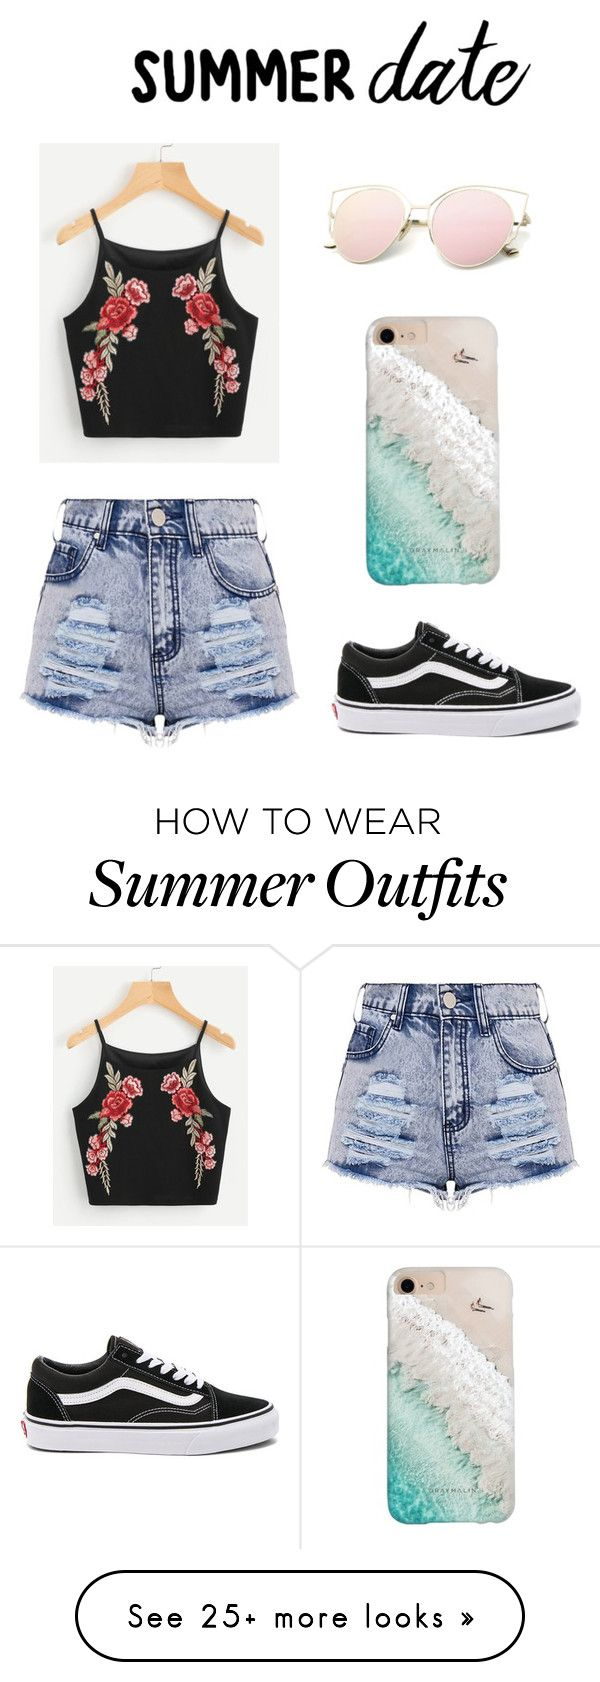 """summer date casual outfit"" by vlogswithparis on Polyvore featuring Vans and Gray Malin"